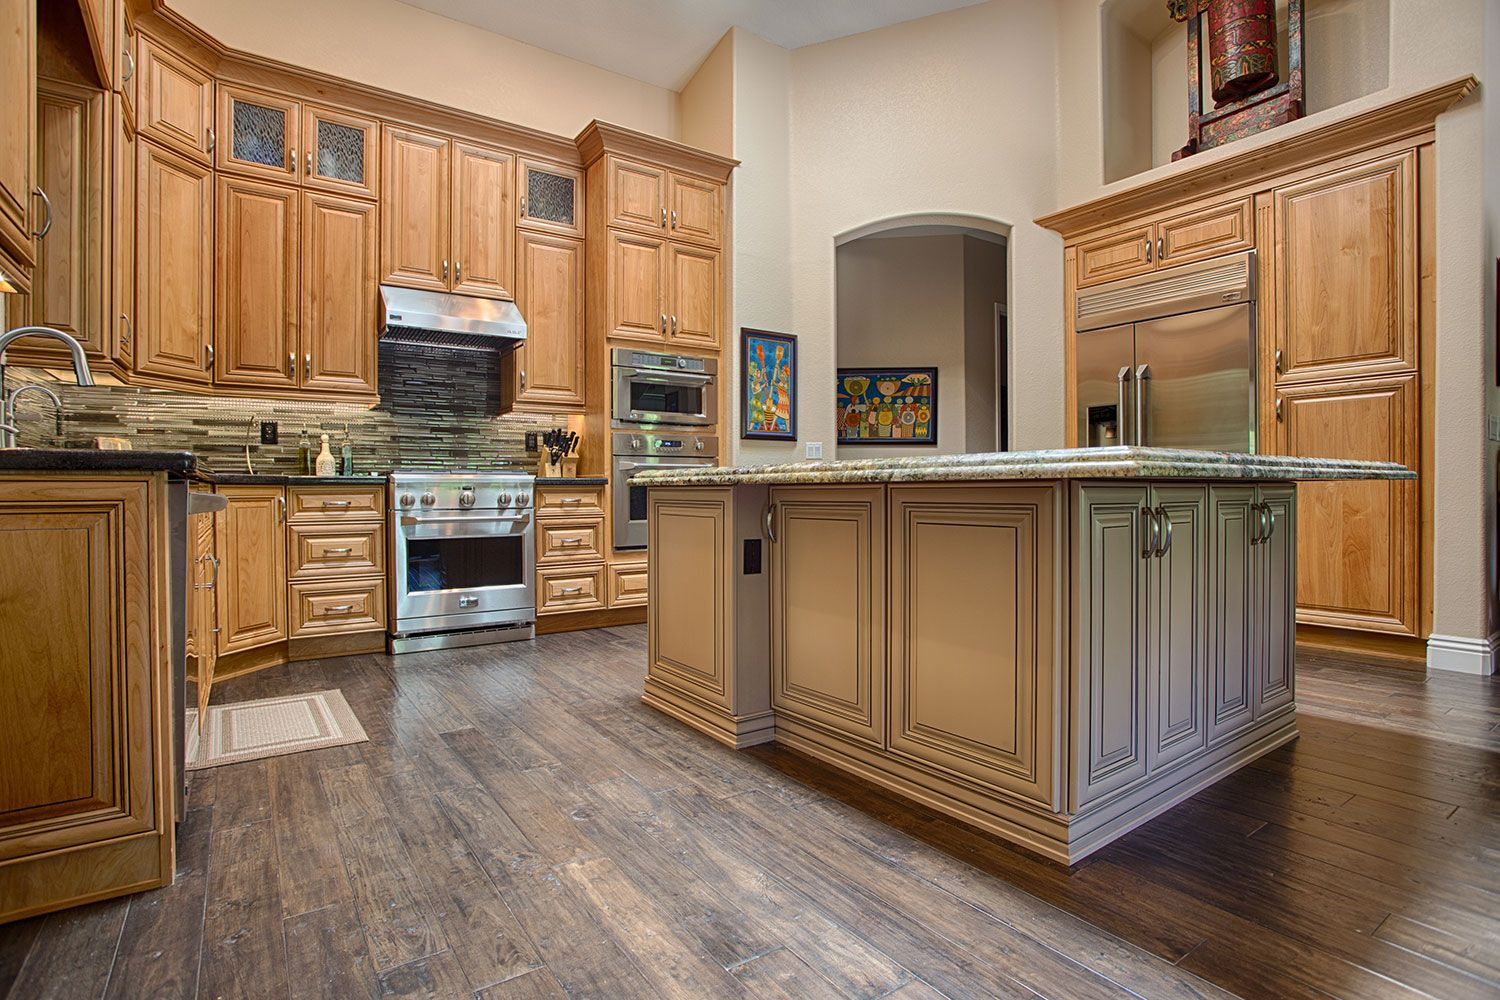 Custom Glazed Kitchen Cabinets Savano Kitchen Cabinets With A Natural Stain And Brown Glaze